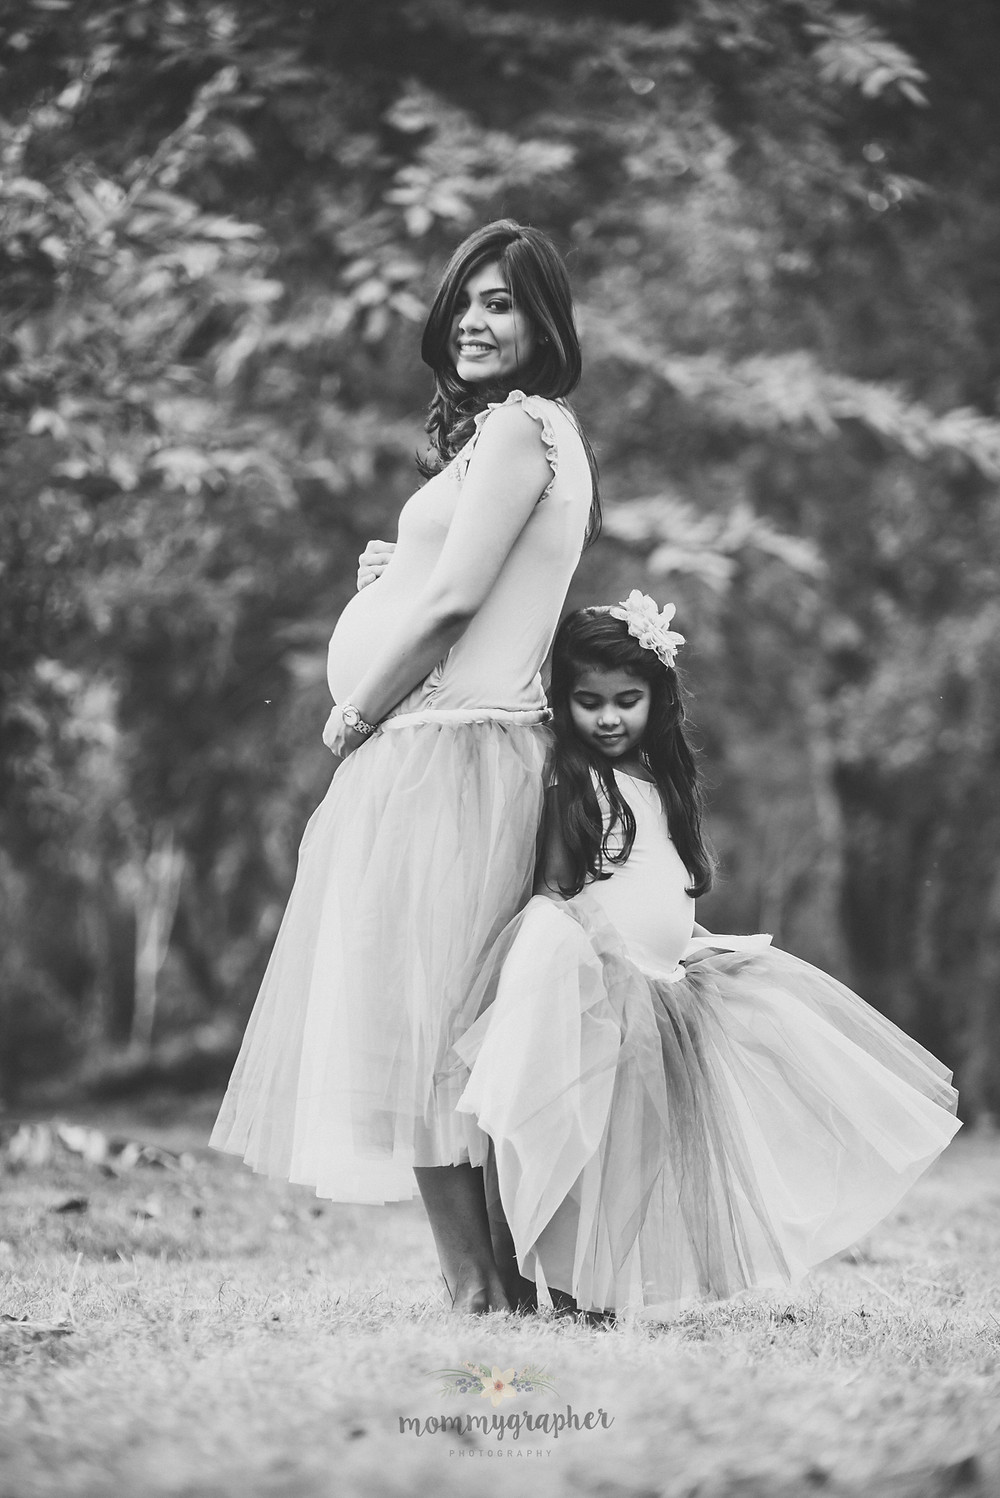 Mom and Daughter Maternity Photographer